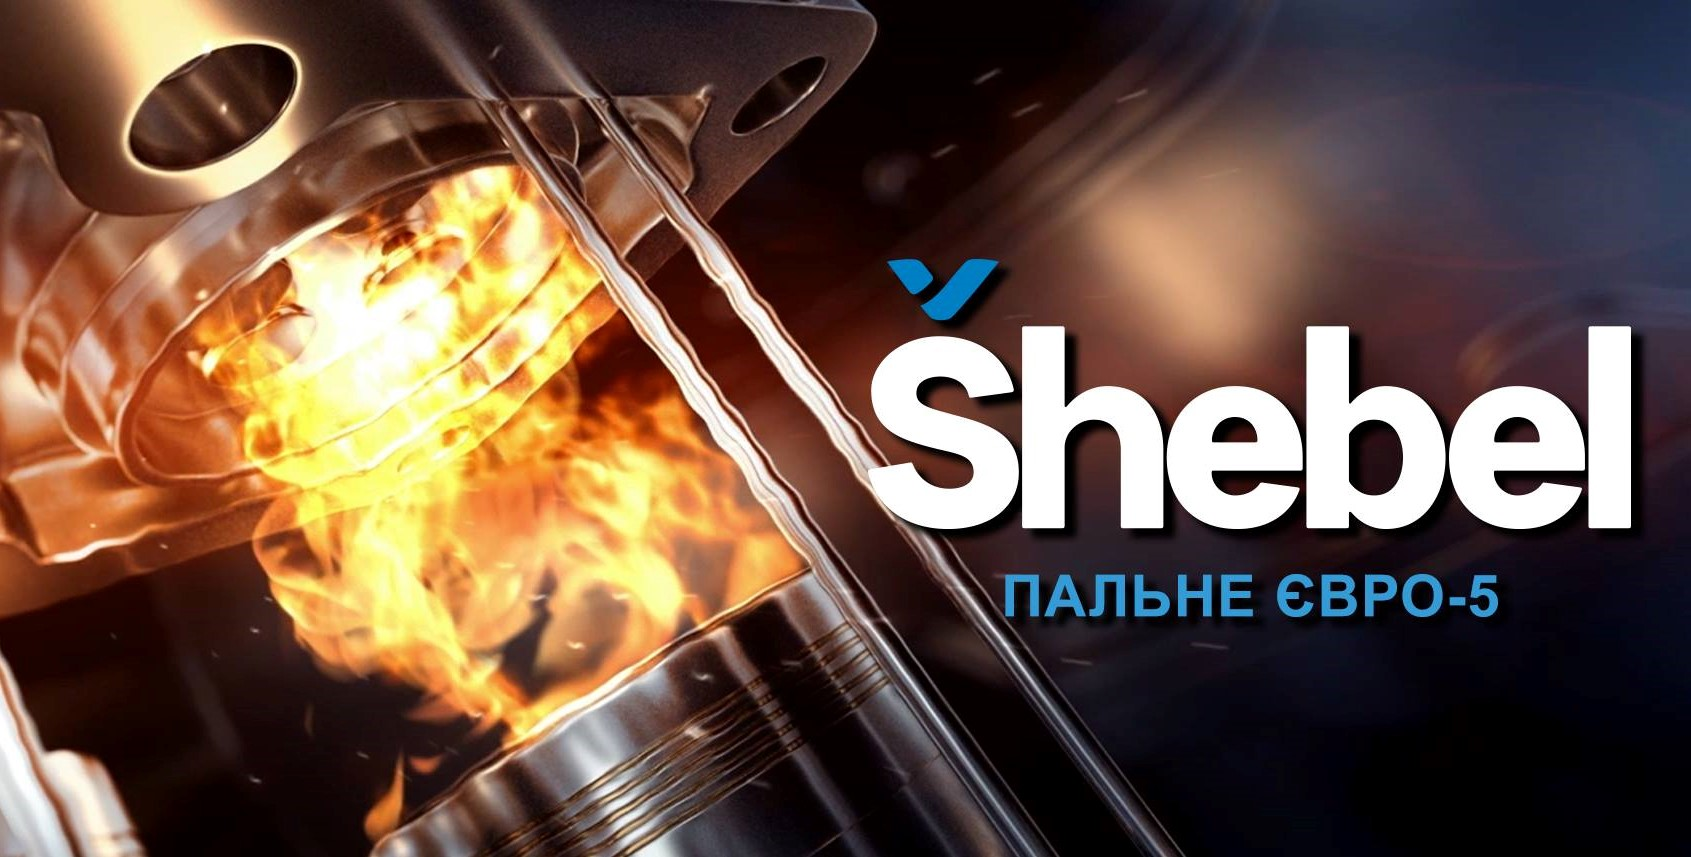 100,000 tons of Shebel quality fuel from national producer